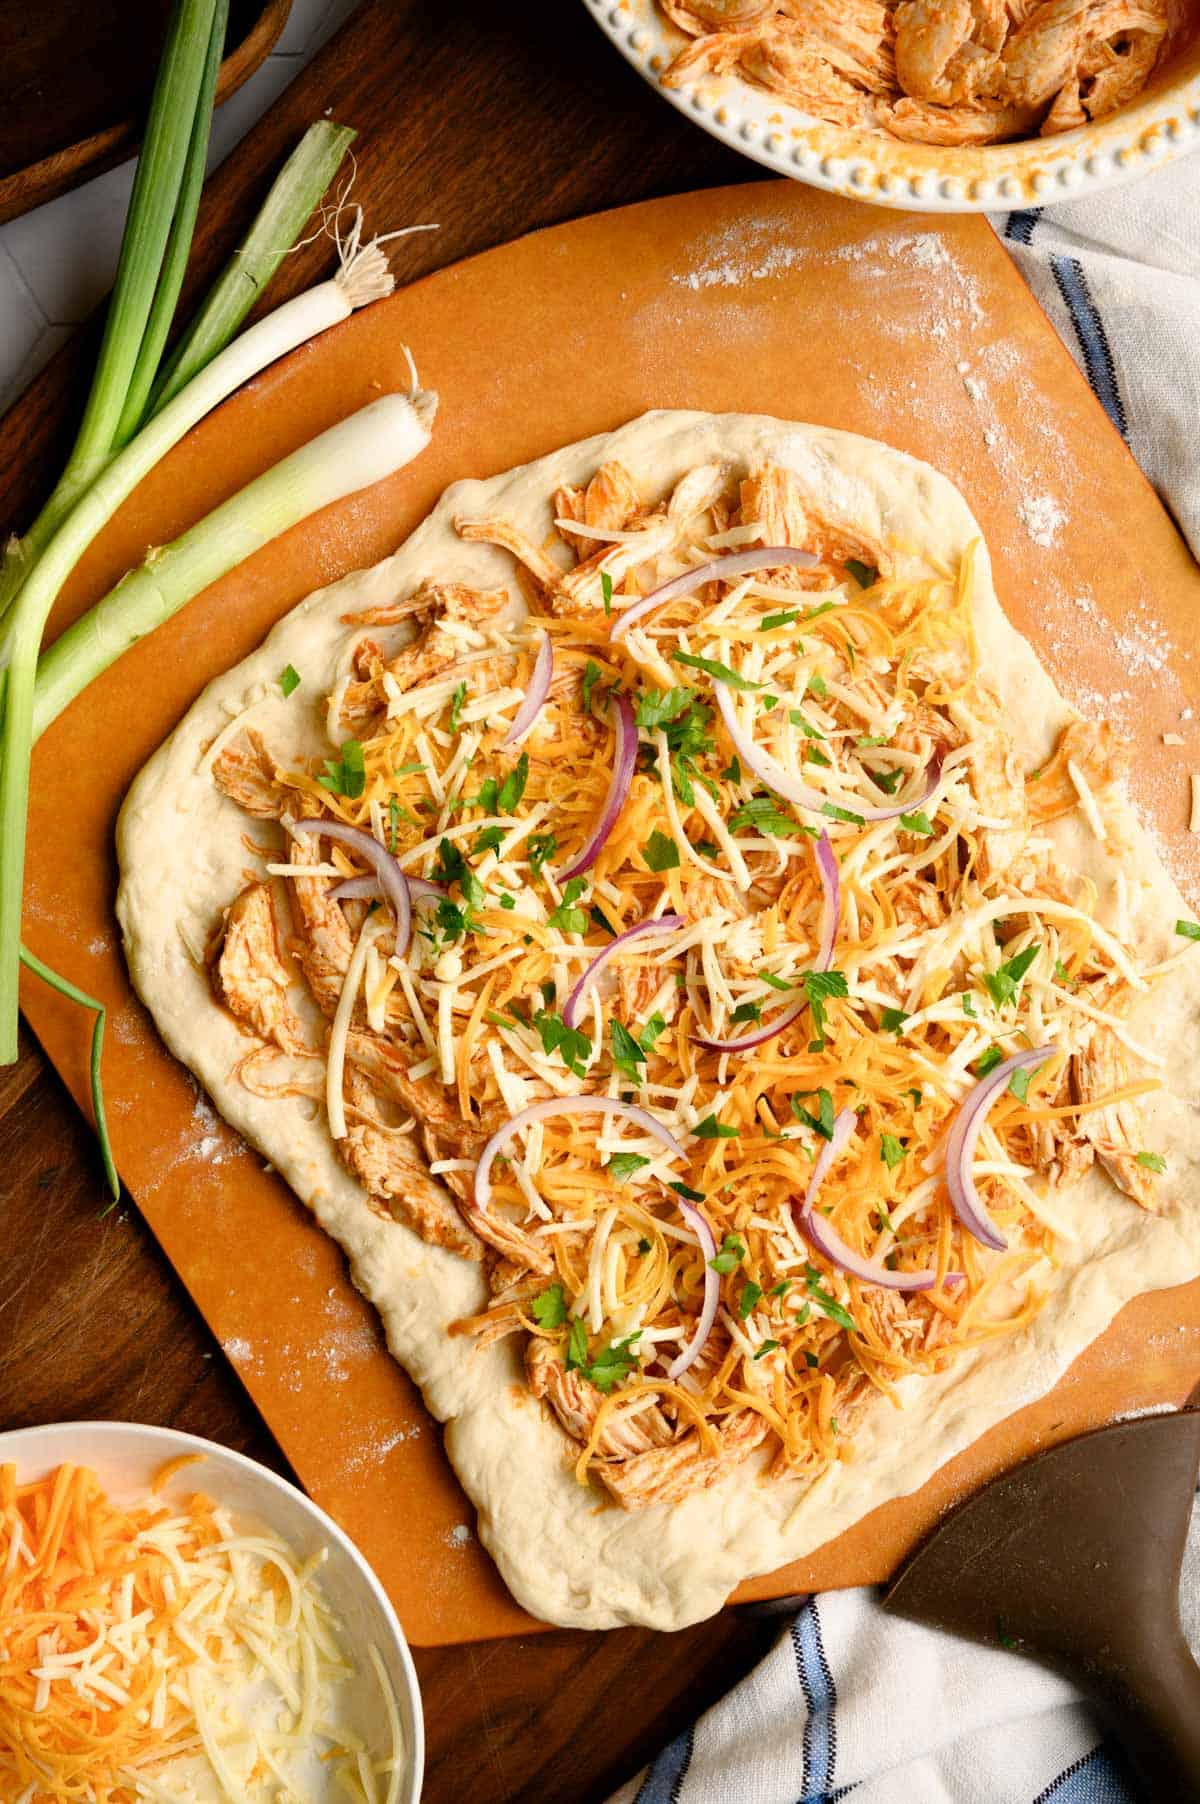 uncooked Buffalo chicken pizza with red onions and cilantro on top garnished with whole green onions